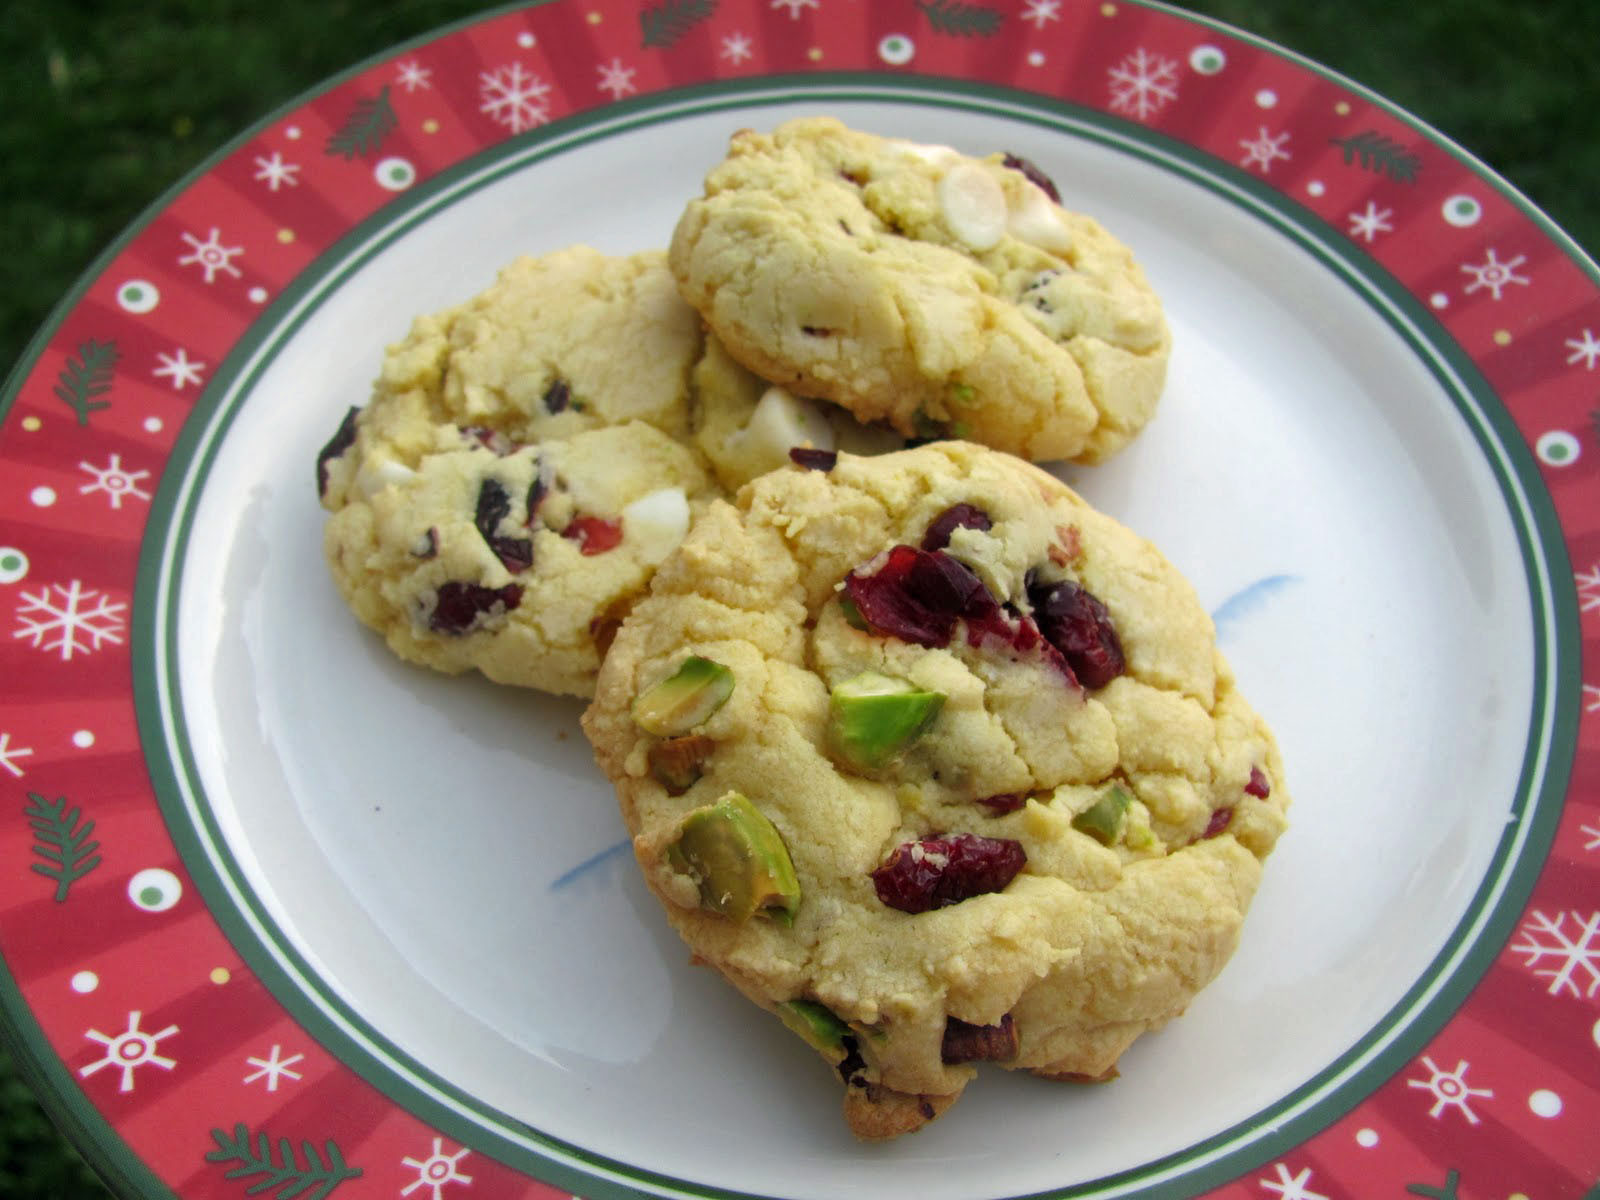 Cranberry Christmas Cookies  The Girly Girl Cooks Cranberry Pistachio Christmas